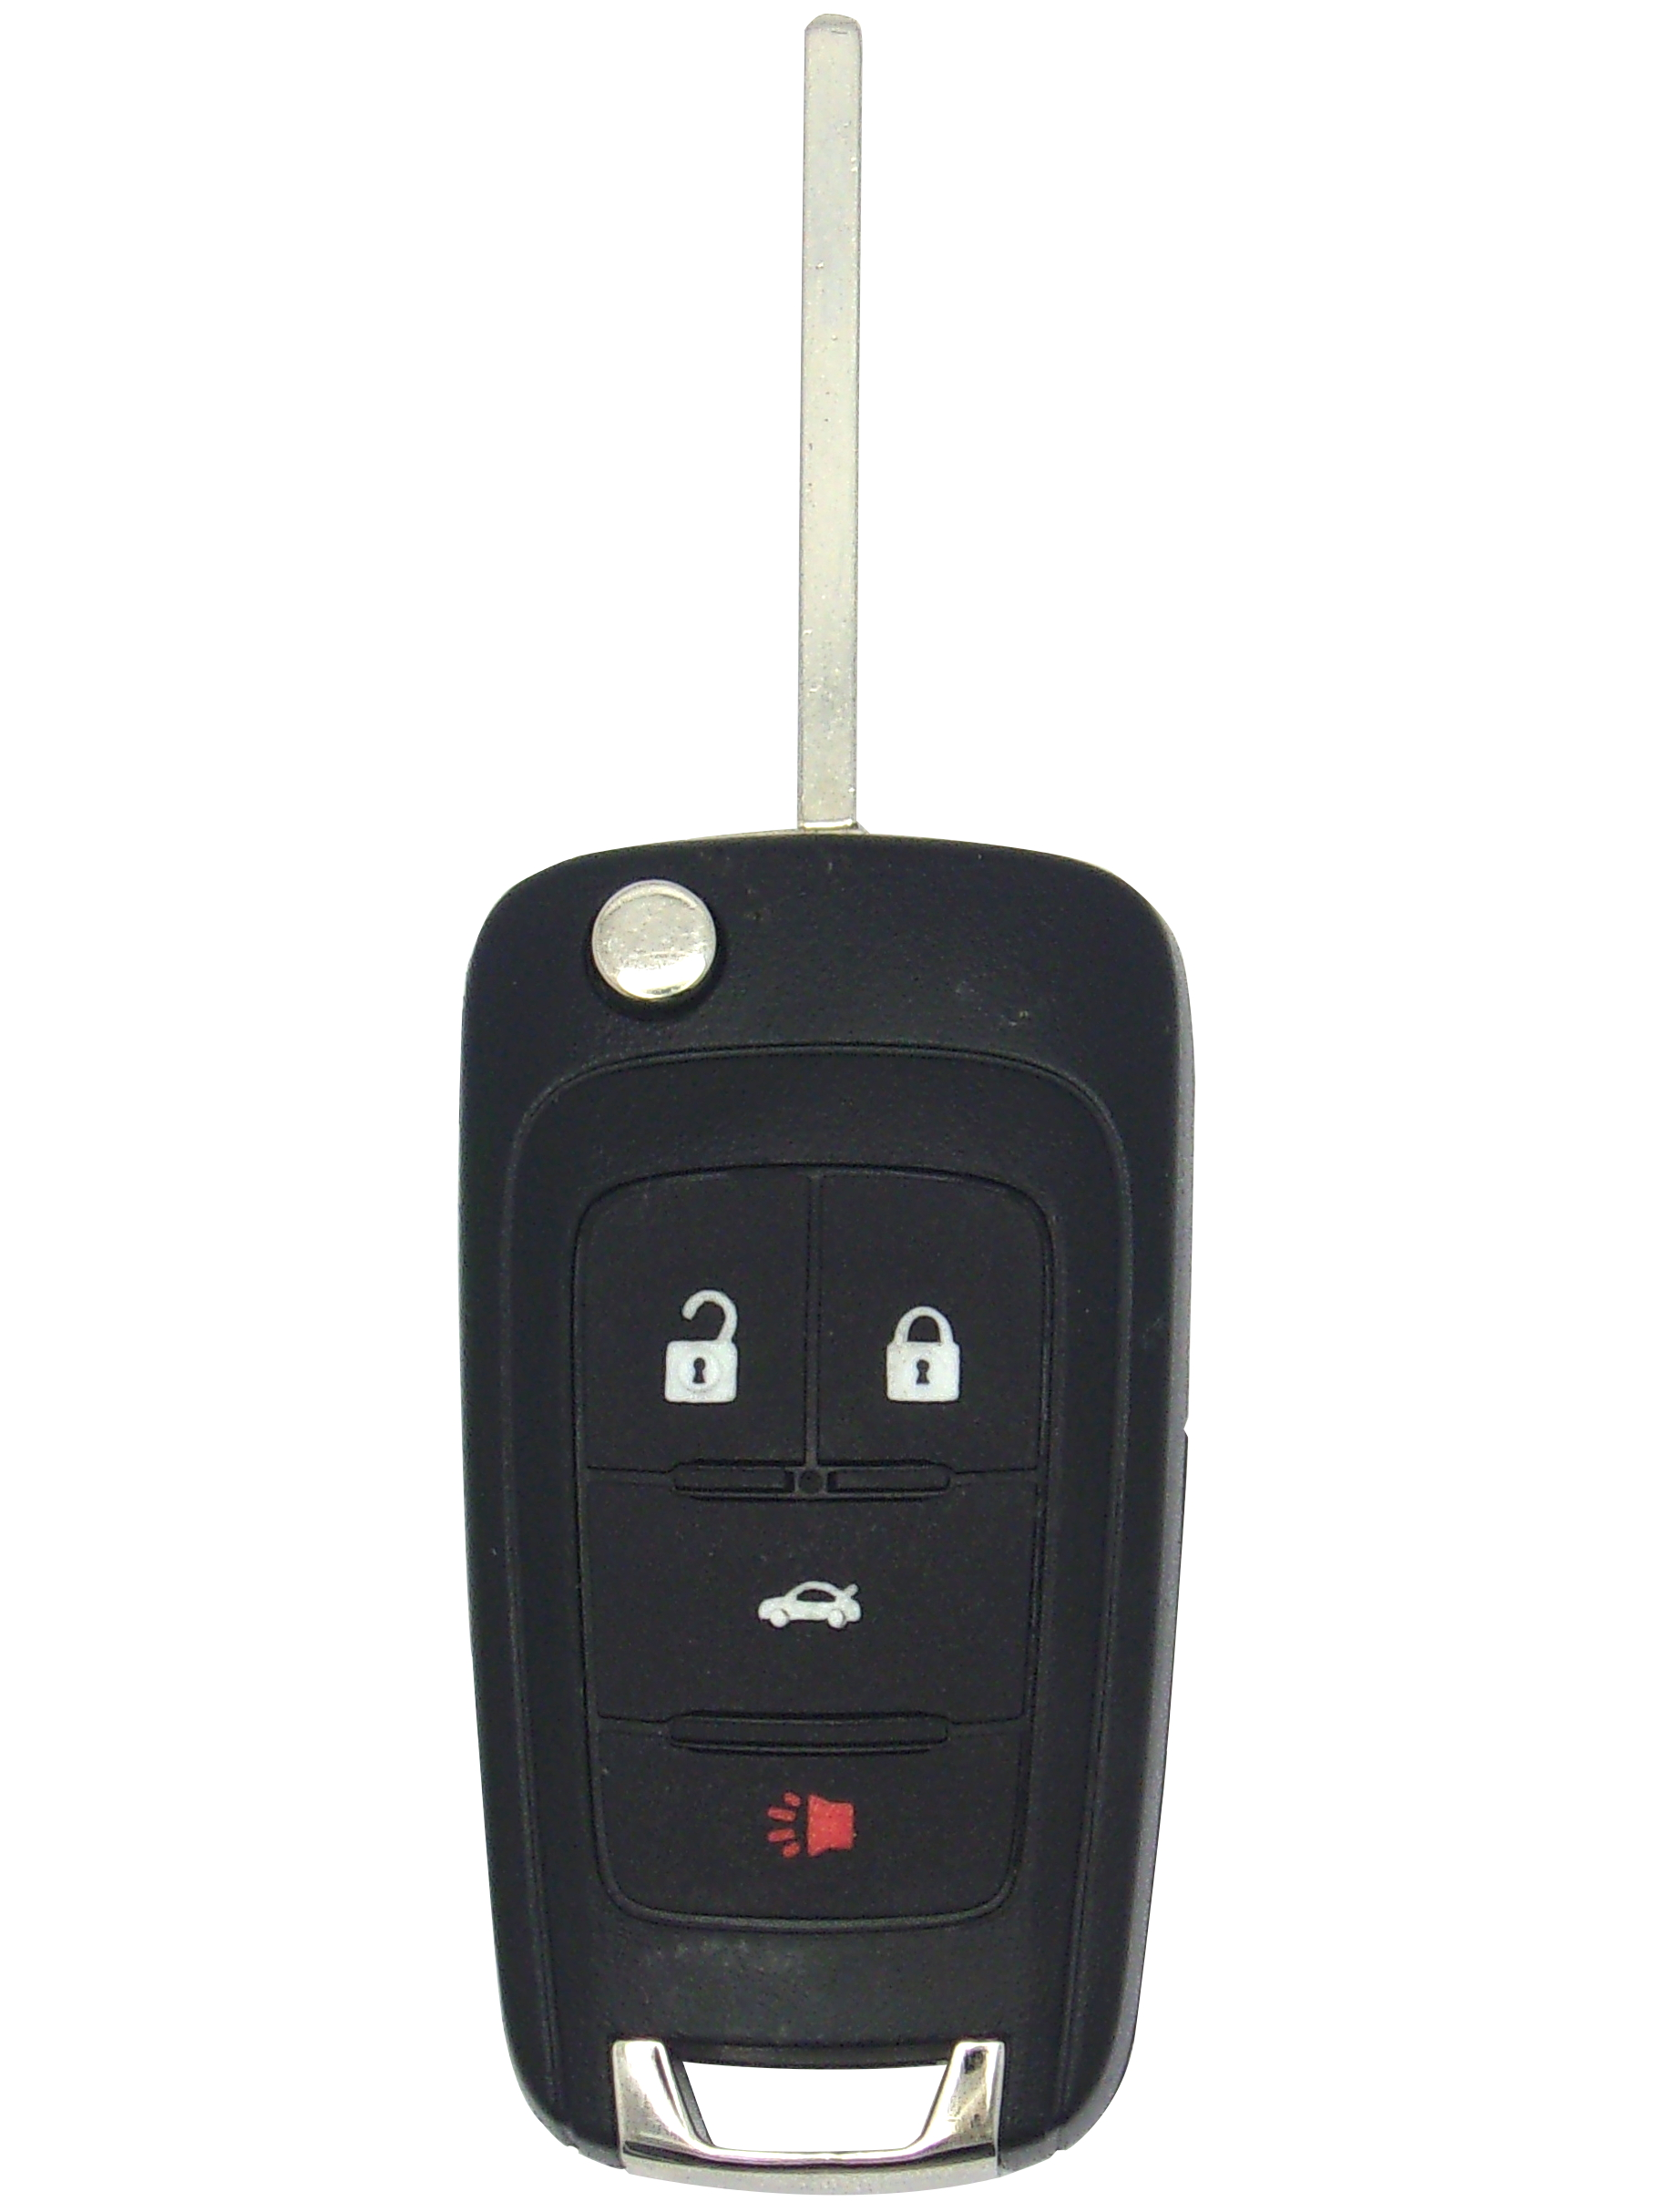 Toyota Remote Key Keyless Entry Three Function Keyslockunlocktrunk